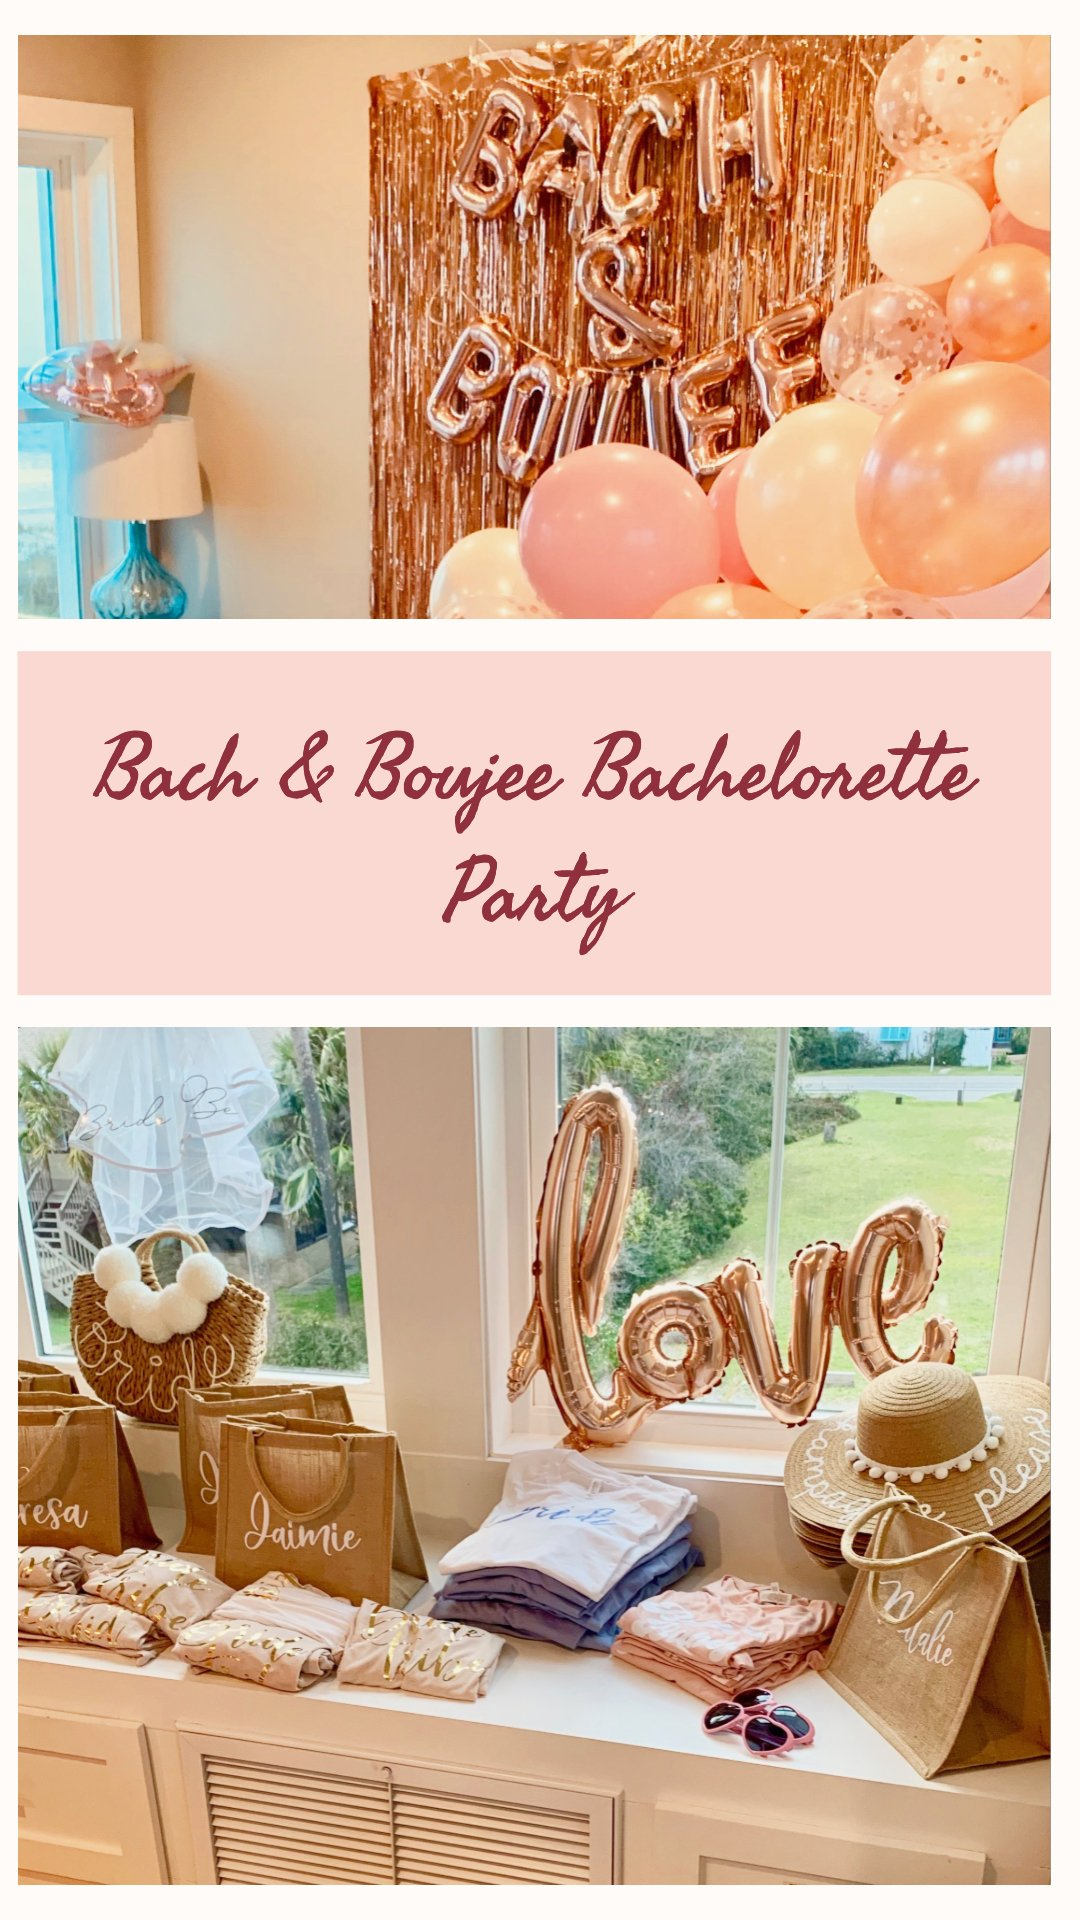 bach and boujee bachelorette party